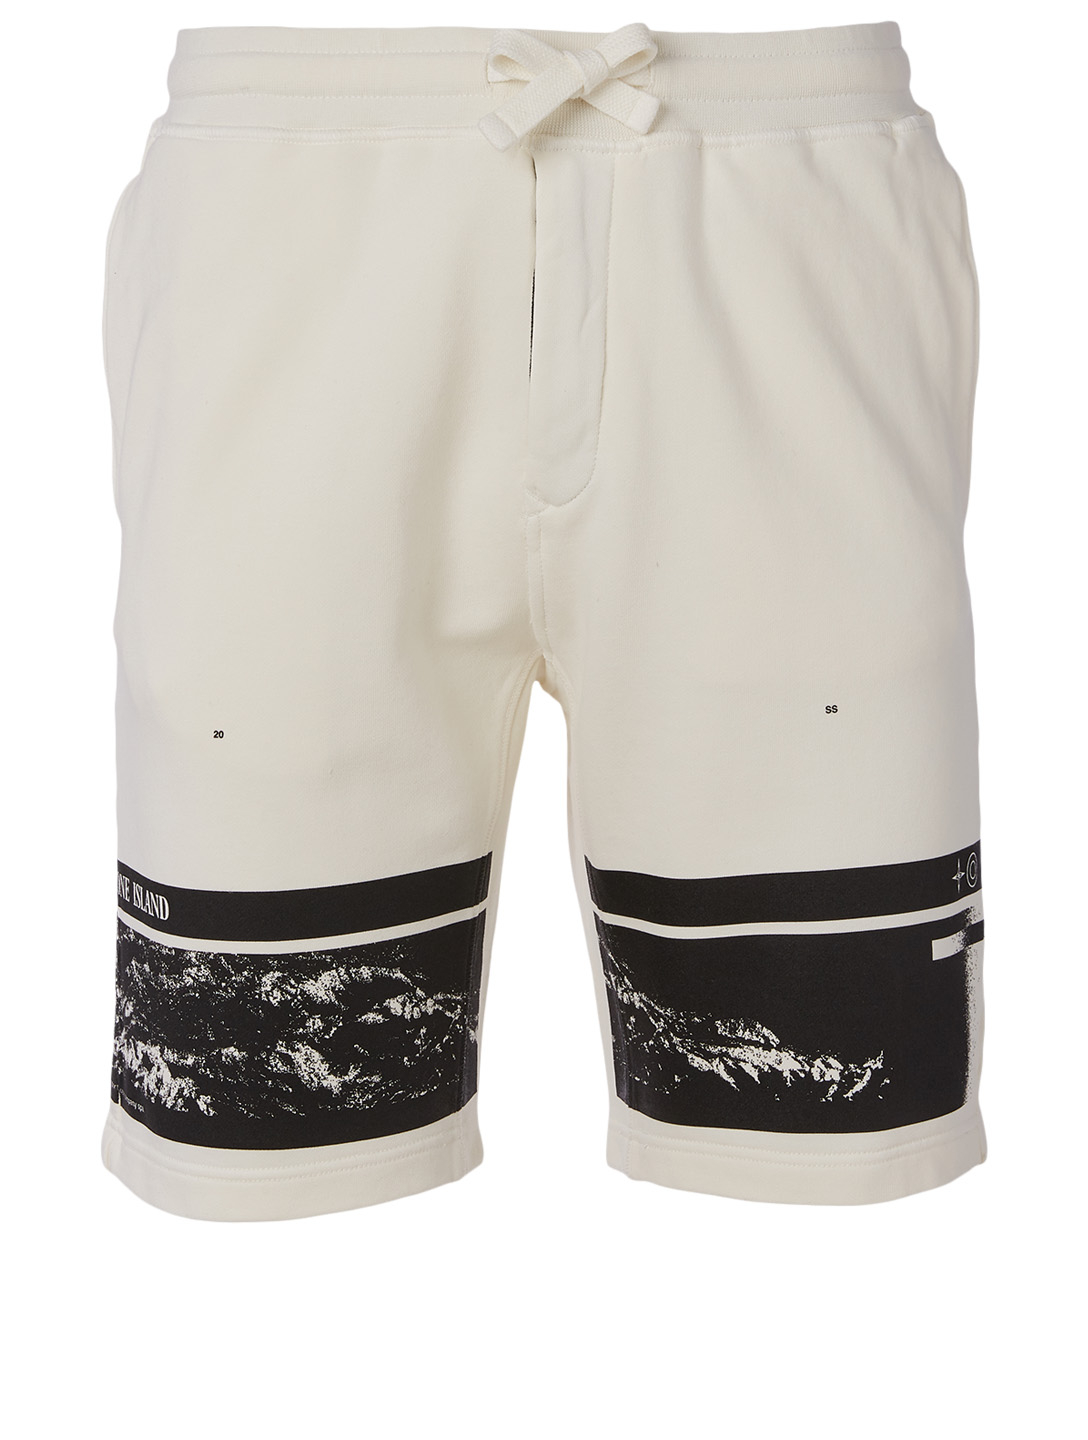 STONE ISLAND Drone Four Fleece Shorts Men's White